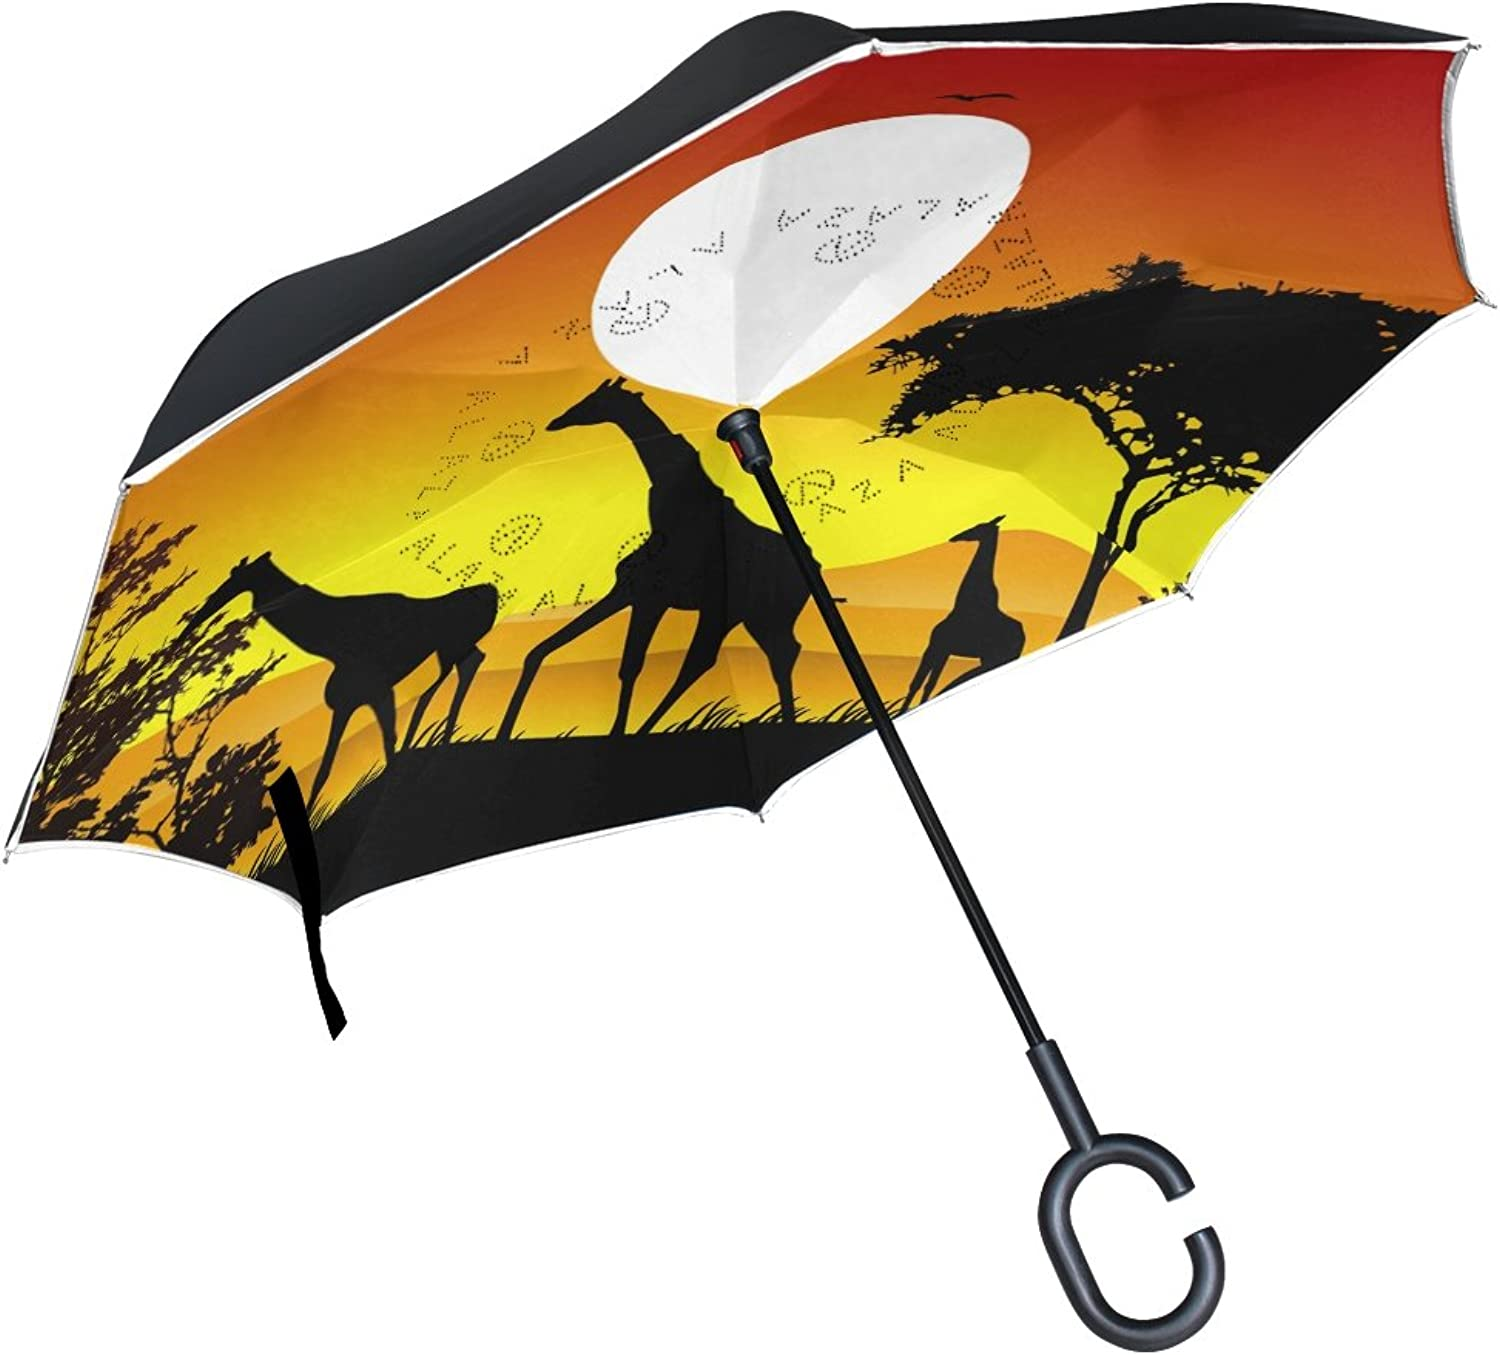 MASSIKOA Beauty Giraffe Trip Silhouettes With Landscape Ingreened Double Layer Straight Umbrellas Inside-Out Reversible Umbrella with C-Shaped Handle for Rain Sun Car Use